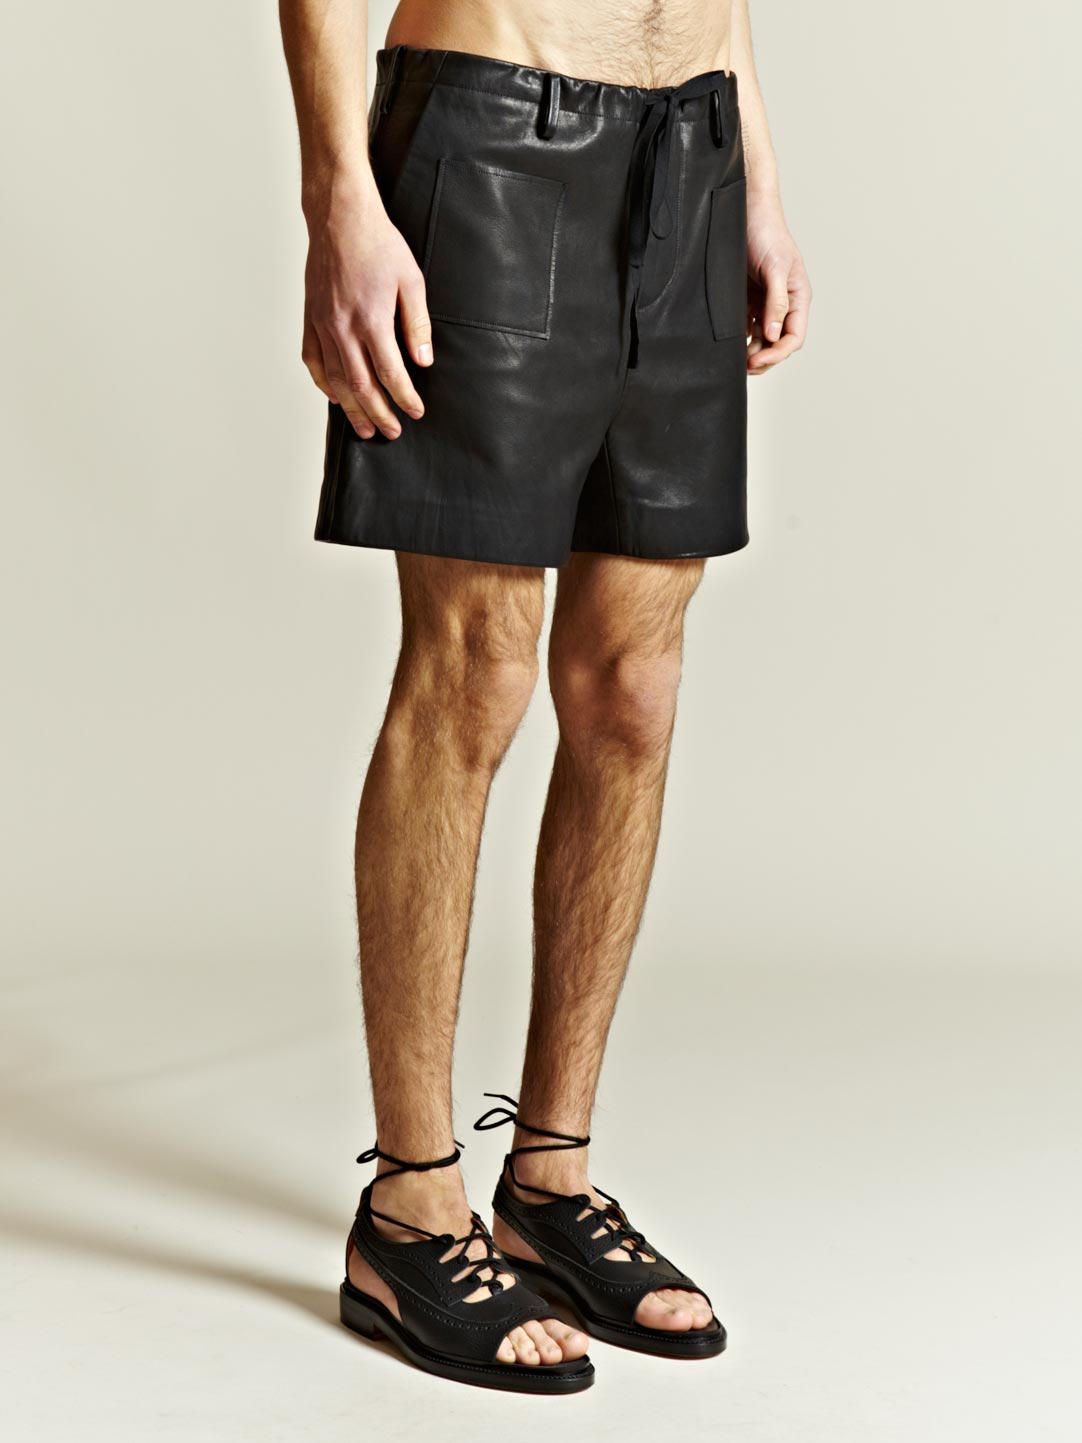 SUNSEA/COWHIDE LEATHER SHORTS & OPEN TOE BROGUES SHOES_f0170995_12564211.jpg